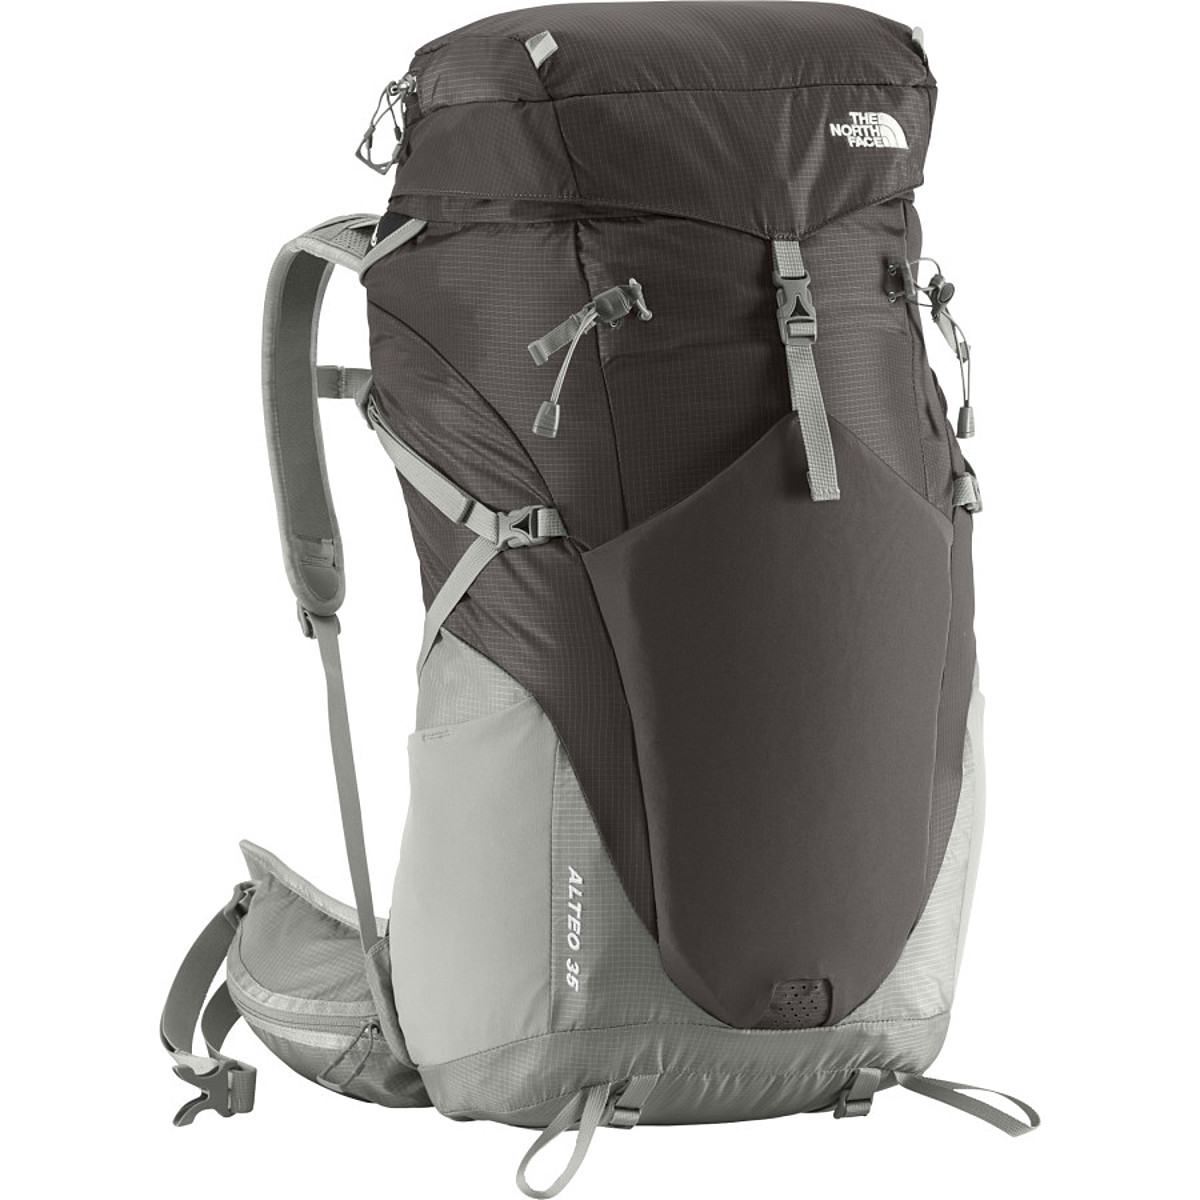 The North Face Alteo 35